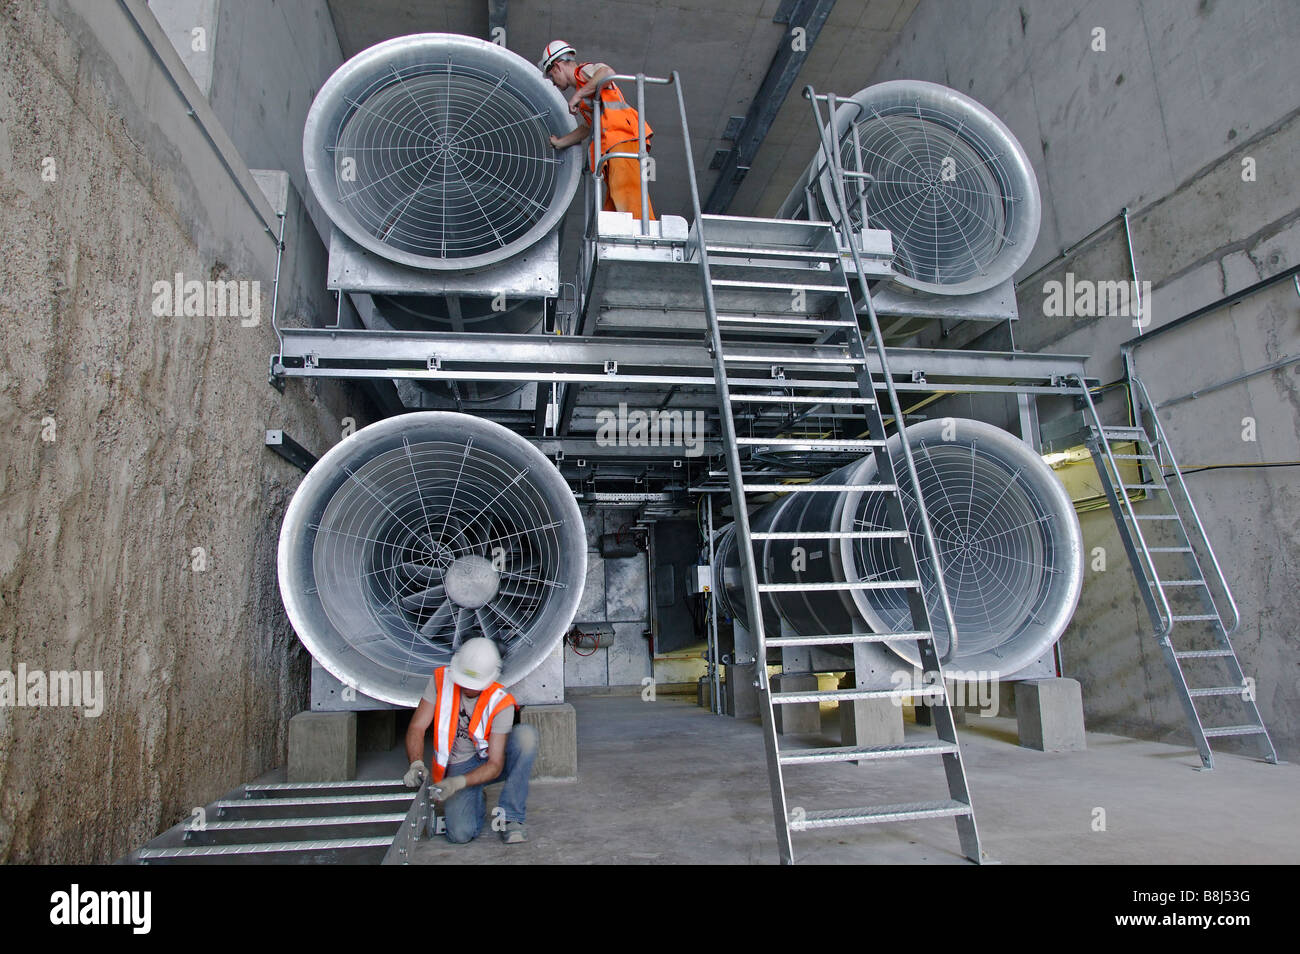 Stock Fans Replacing The Stock Fan With An Electric One Can Be